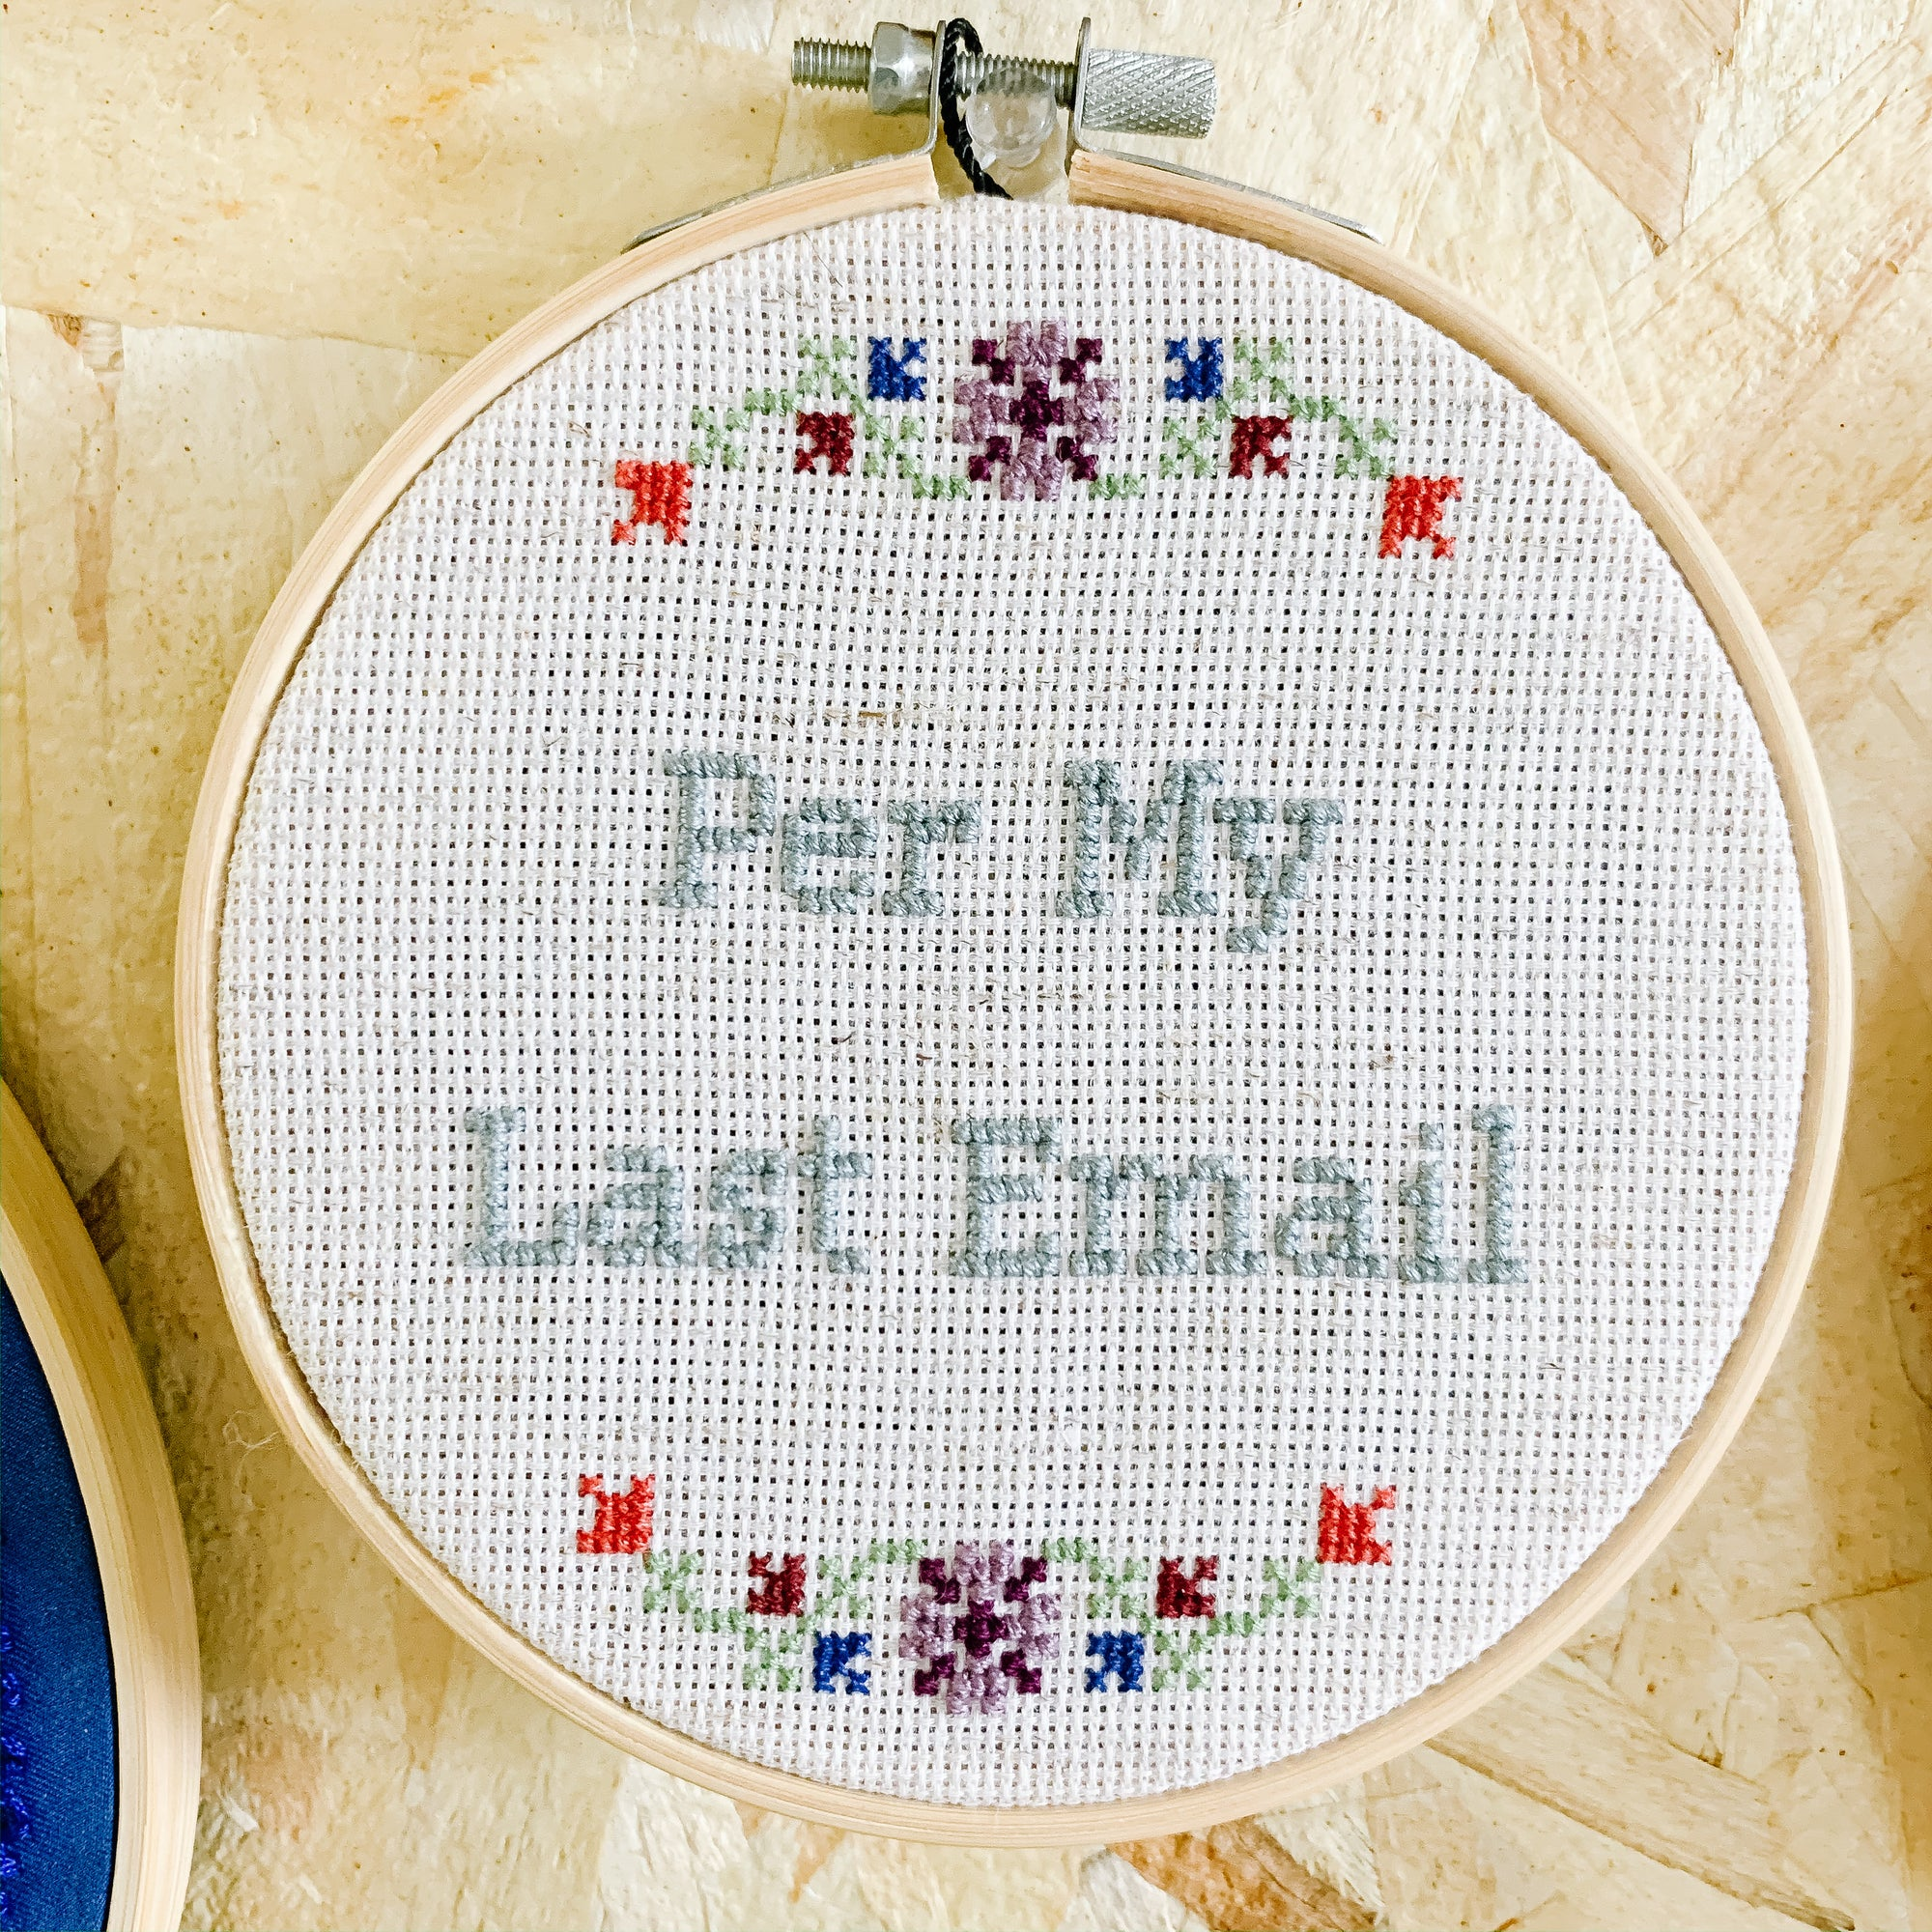 Per My Last Email Embroidery Art - Femme Wares Niagara Local Small Business